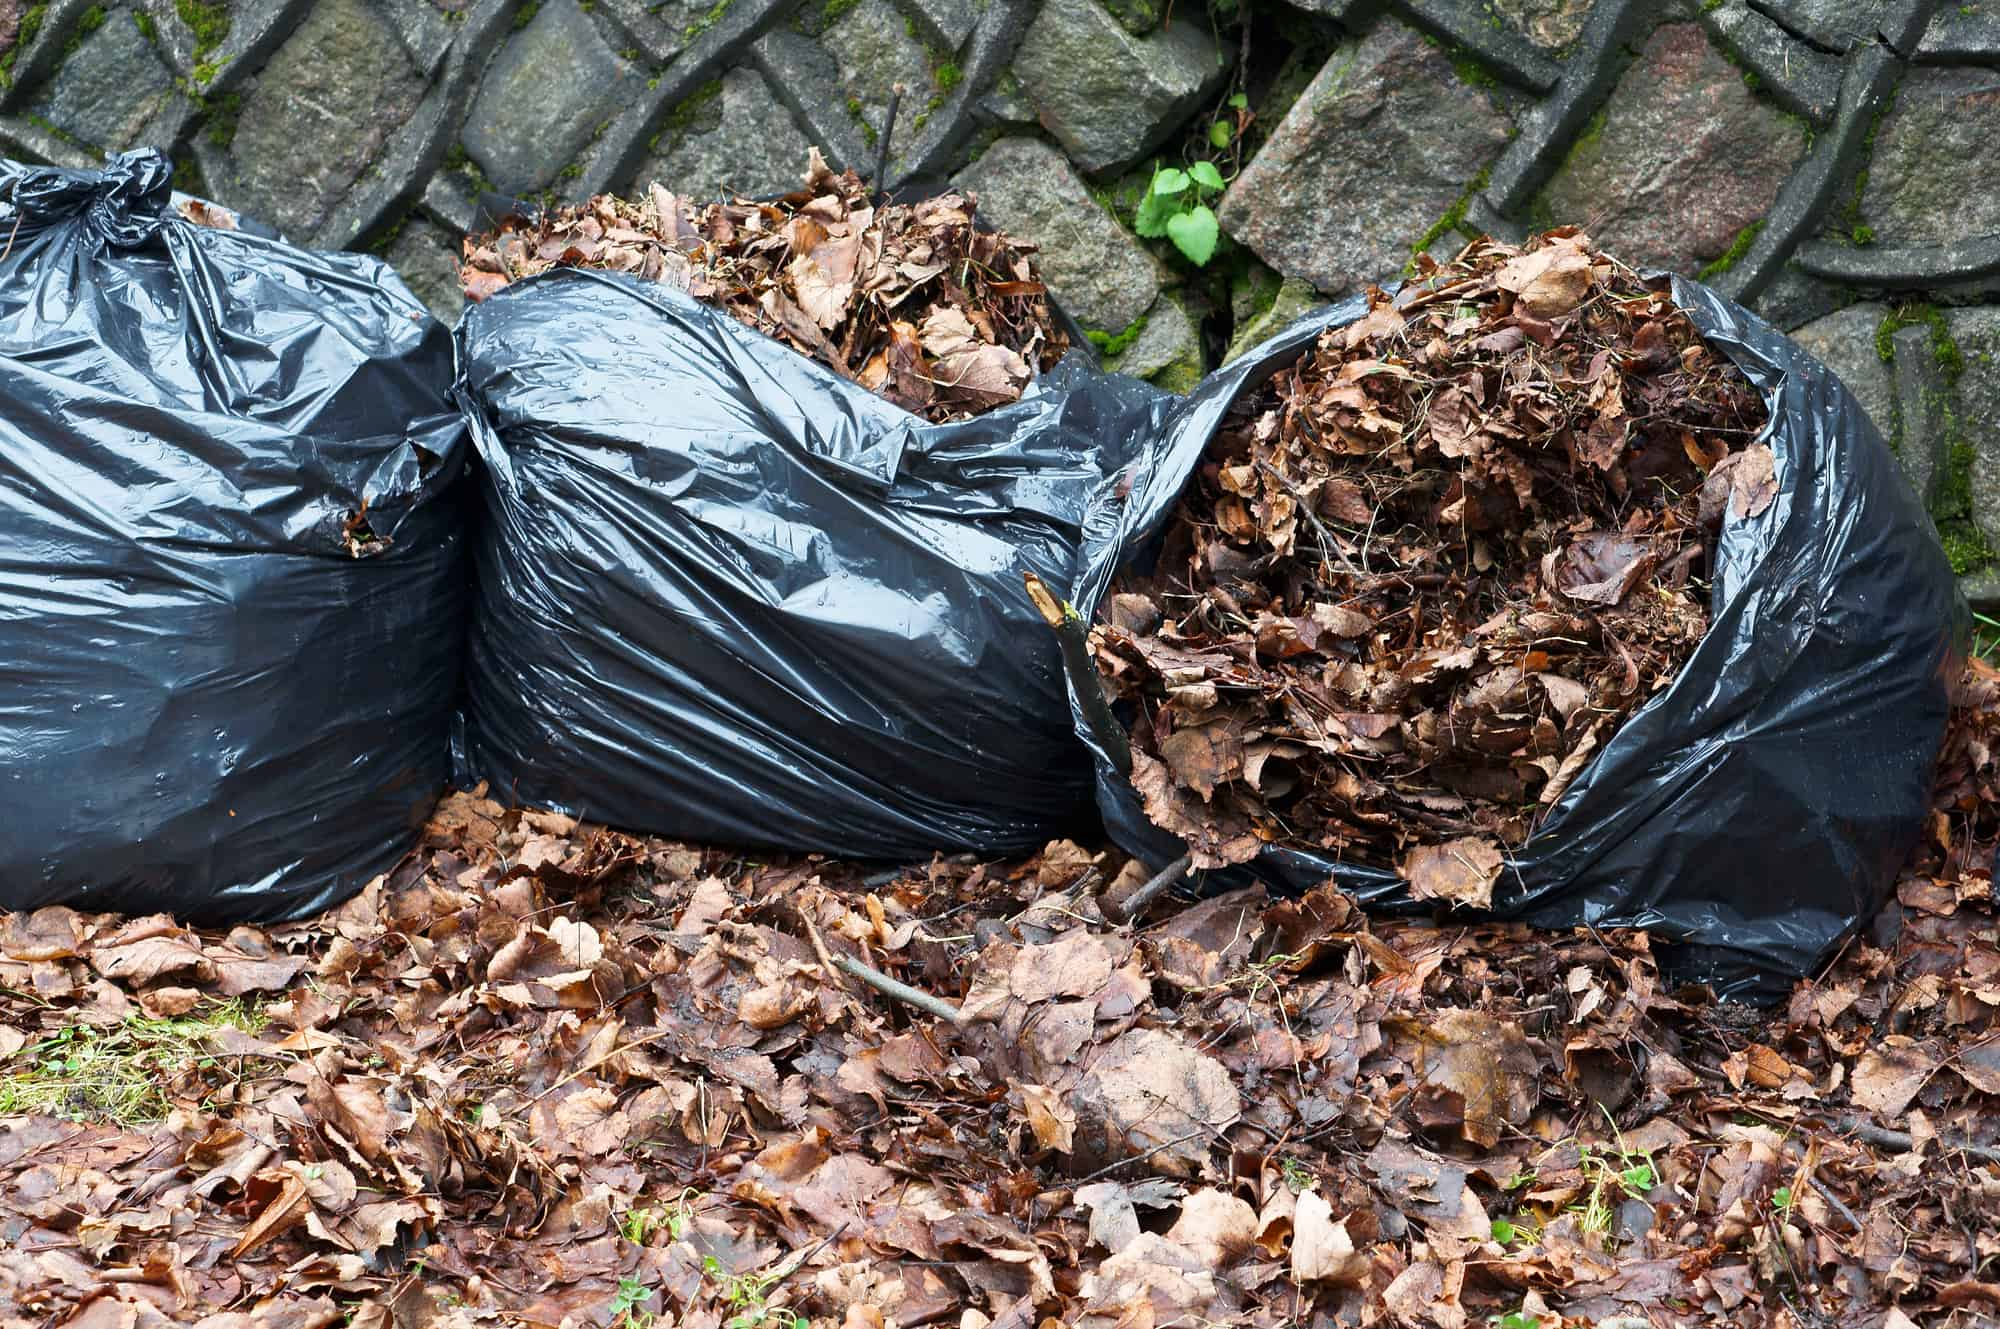 bagged leaves ready to be disposed of